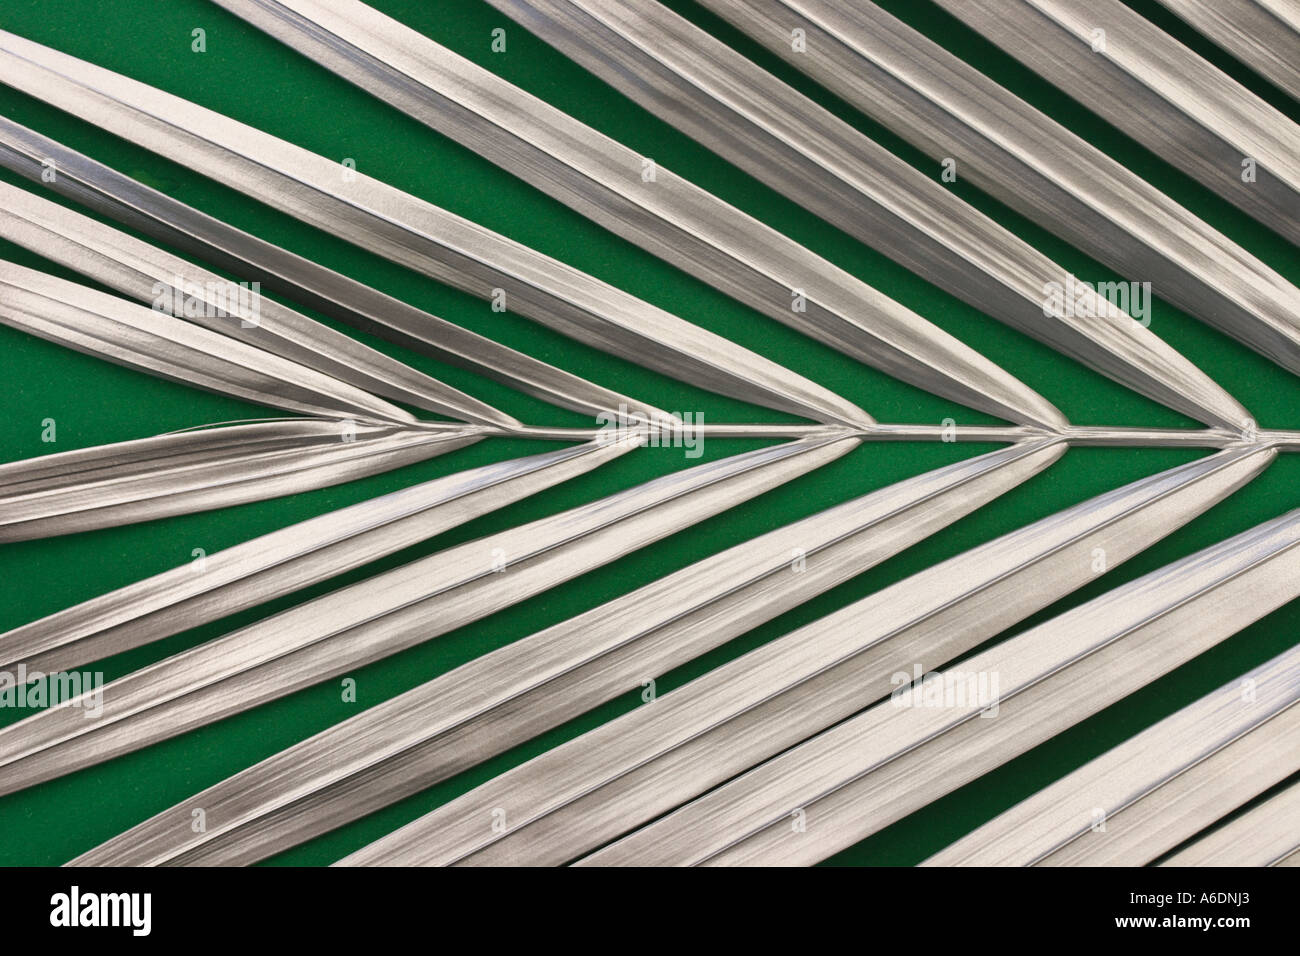 SILVER PALM FROND  GREEN BACKGROUND HORIZONTAL BAPDB5993 - Stock Image